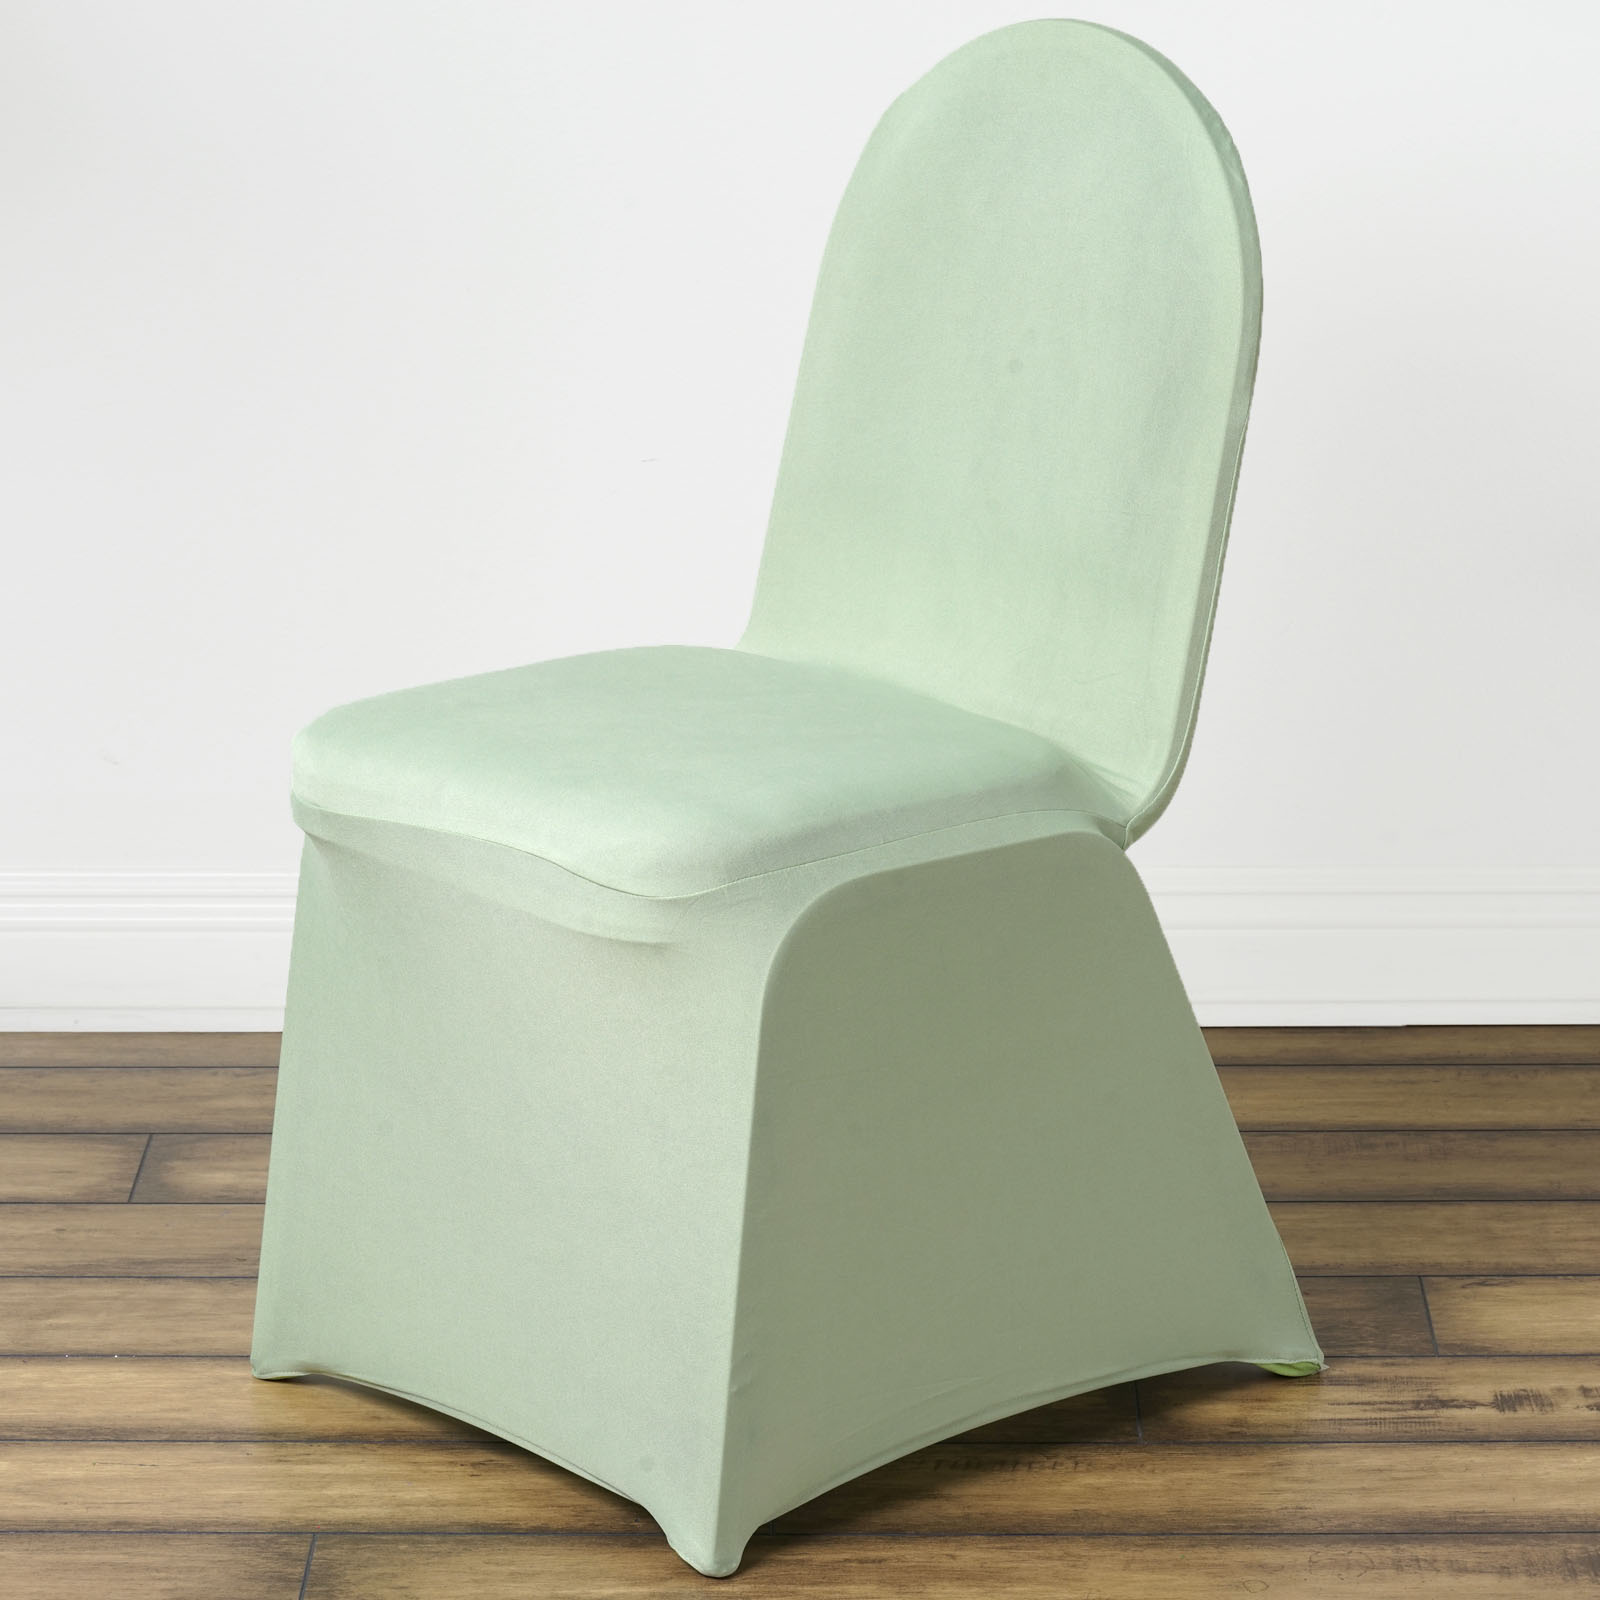 BalsaCircle Spandex Stretchable Banquet Chair Covers Slipcovers for Party Wedding Reception Decorations